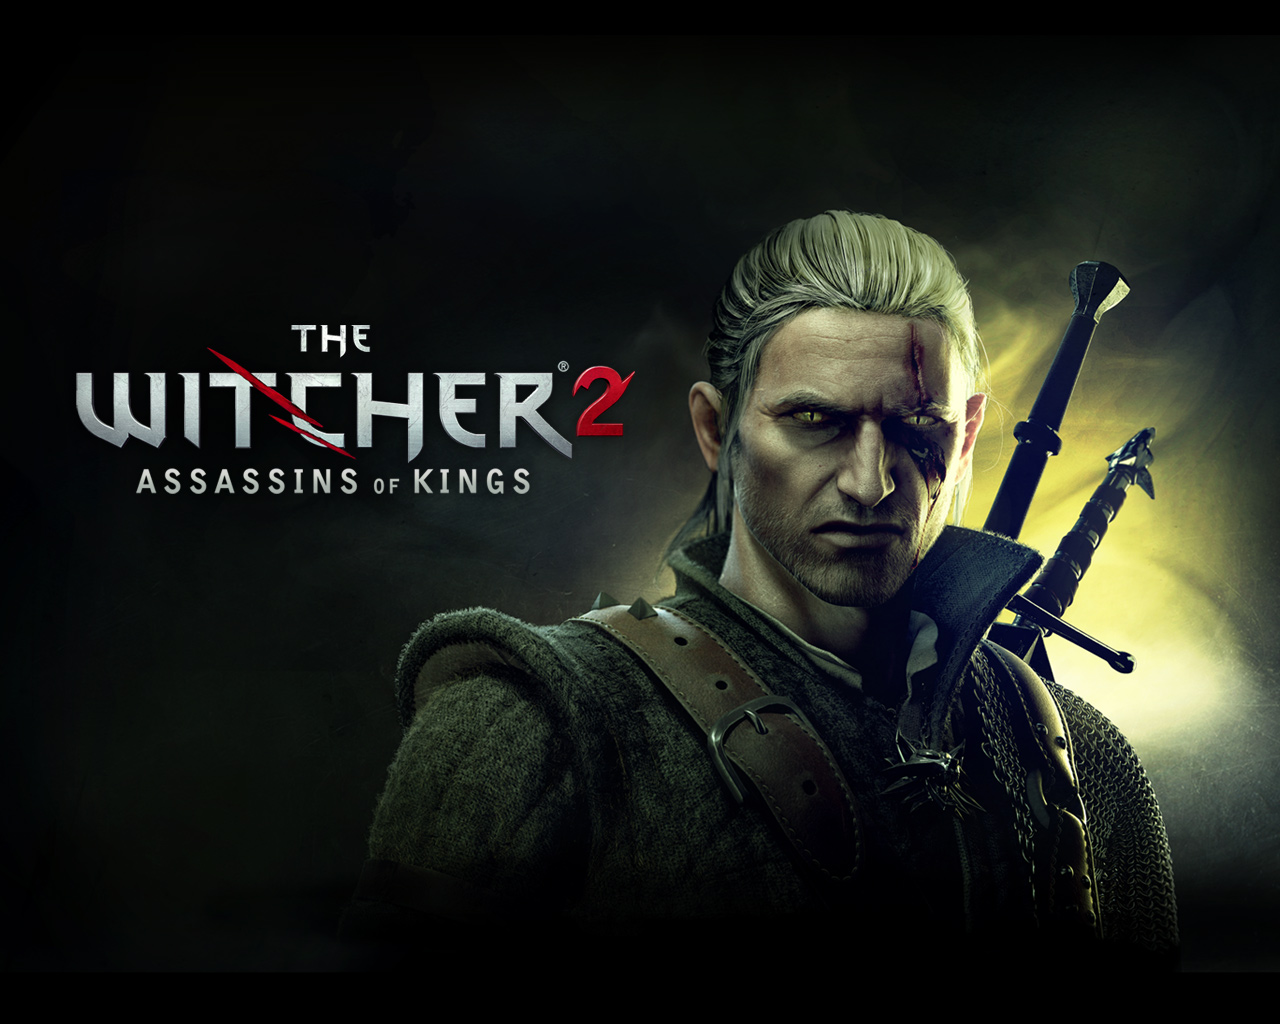 Press Release: The Witcher 2: Assassins of Kings will Now be Avaliable